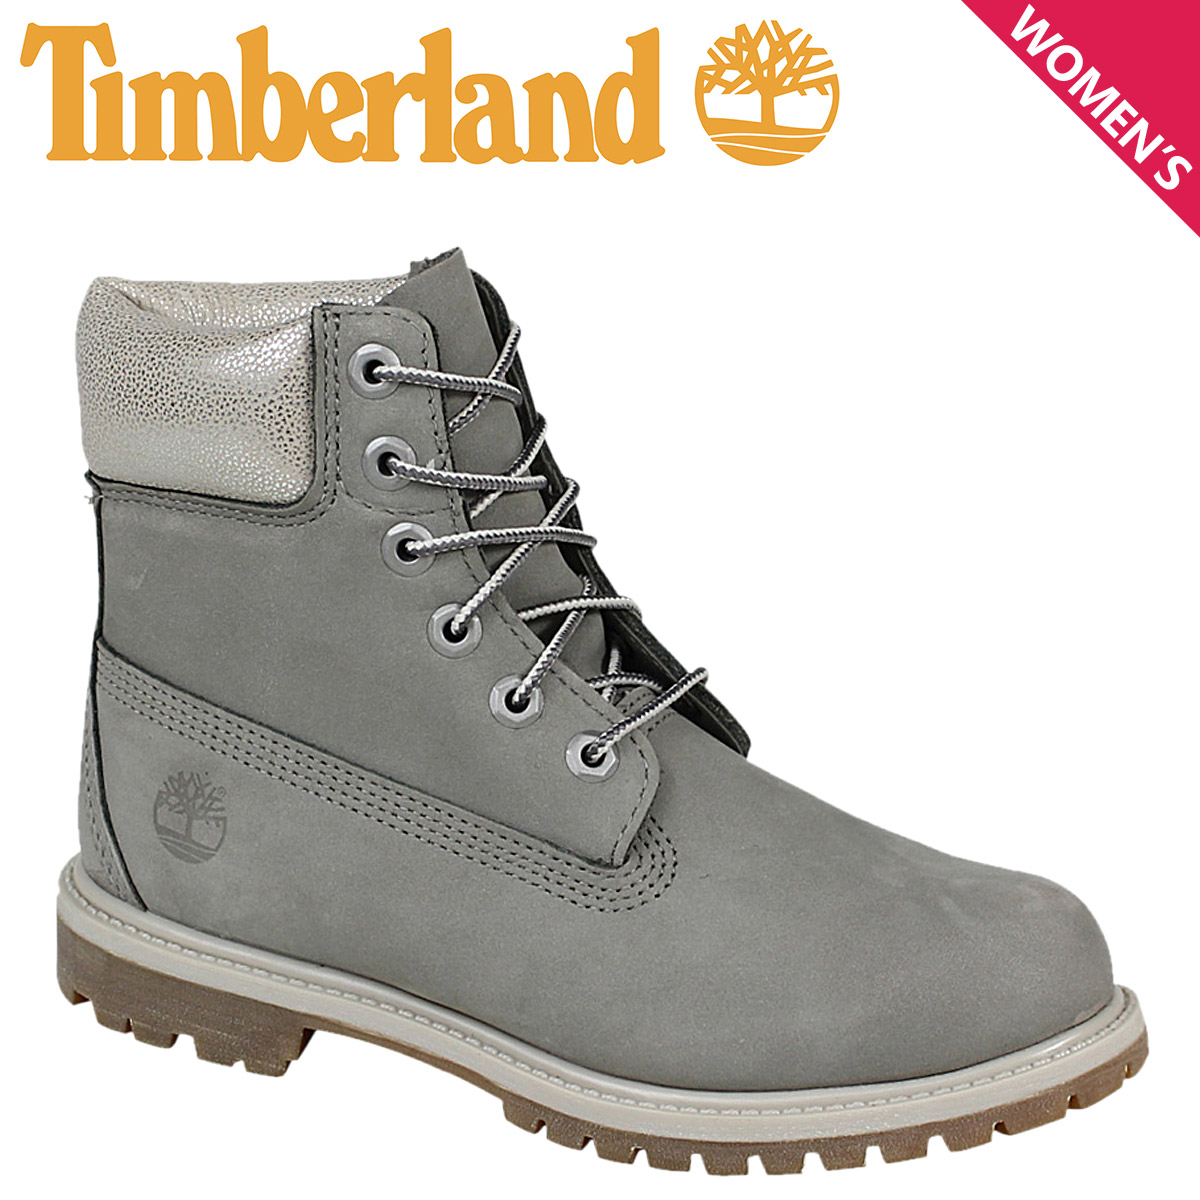 Whats up Sports  Women s Timberland Timberland 6 INCHI 6 inch premium boots  JUNIOR 6-INCH PREMIUM WATERPROOF BOOTS A196J W wise waterproof grey  a6a2433e0